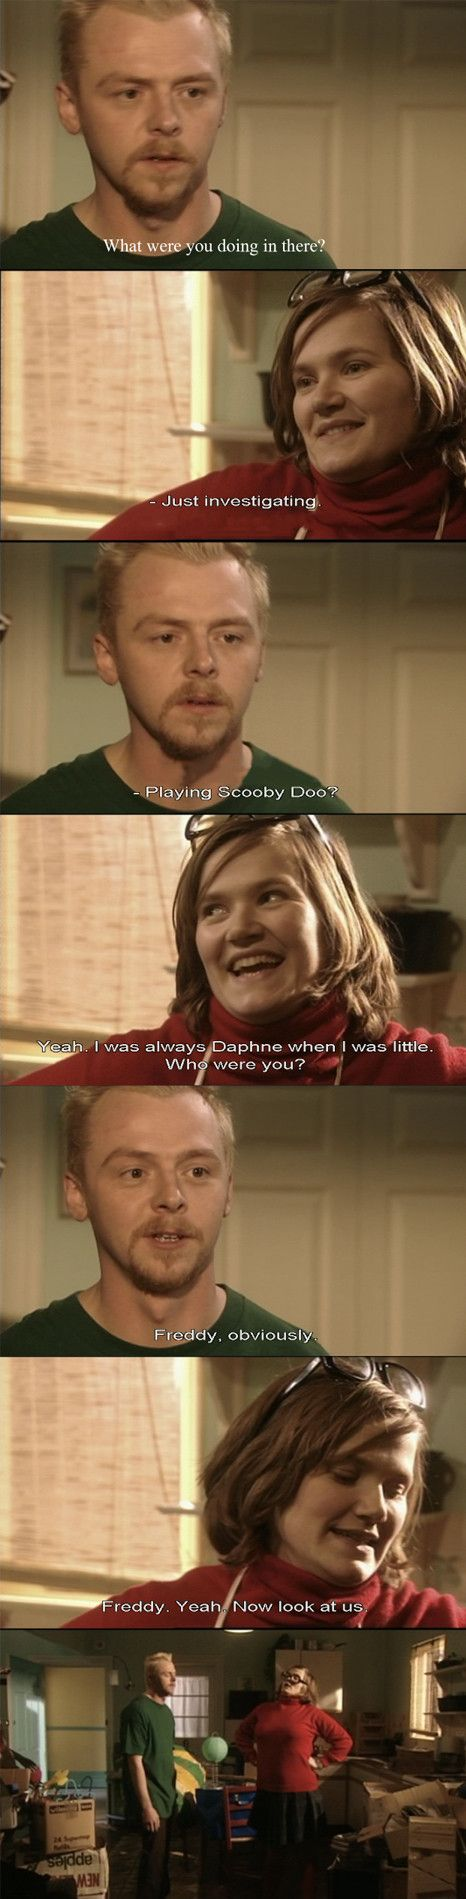 Spaced... hilarious!